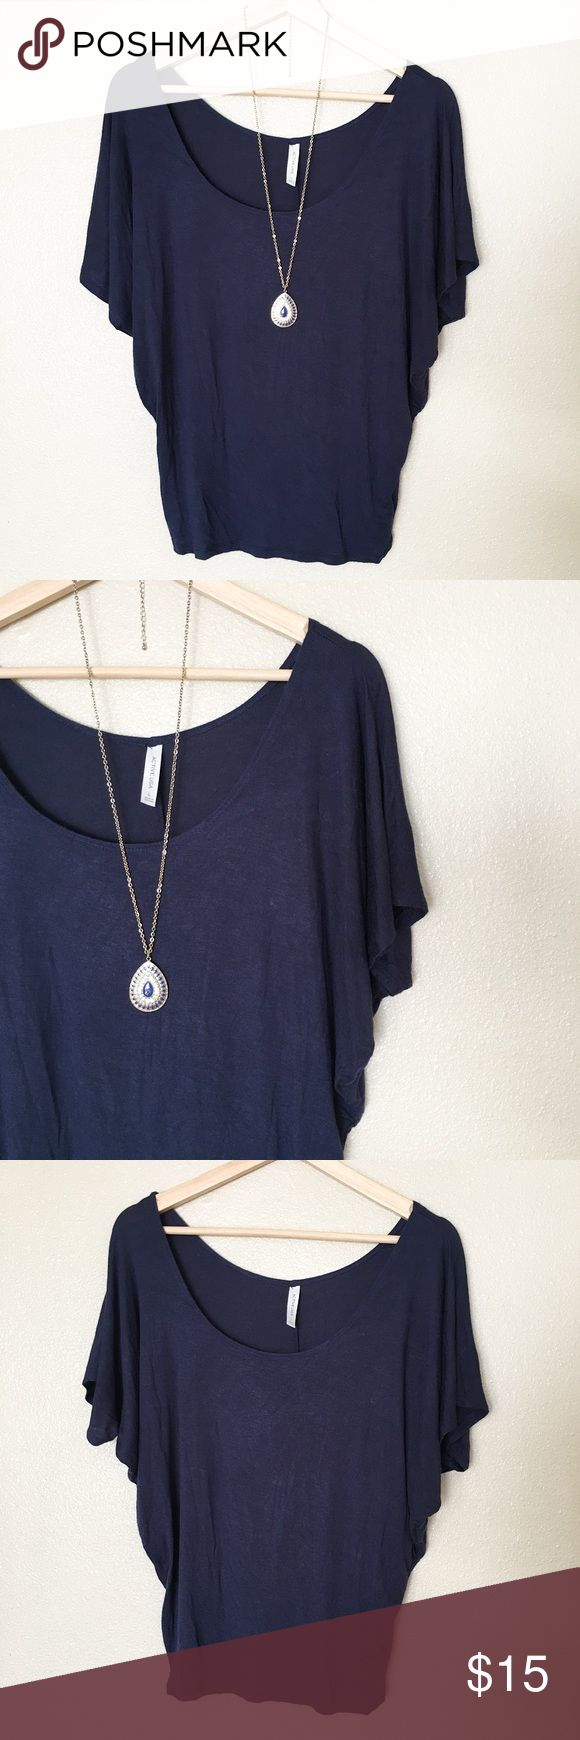 "Navy Blue Batwing Top Casual navy blue batwing top. In good condition. Size L (more like a junior's Large). Measurement from top of shoulder to bottom is 24"". Stretchy material. 95% Rayon, 5% Spandex.  **Listed as Forever 21 for visibility only.** Thanks for looking! Forever 21 Tops"